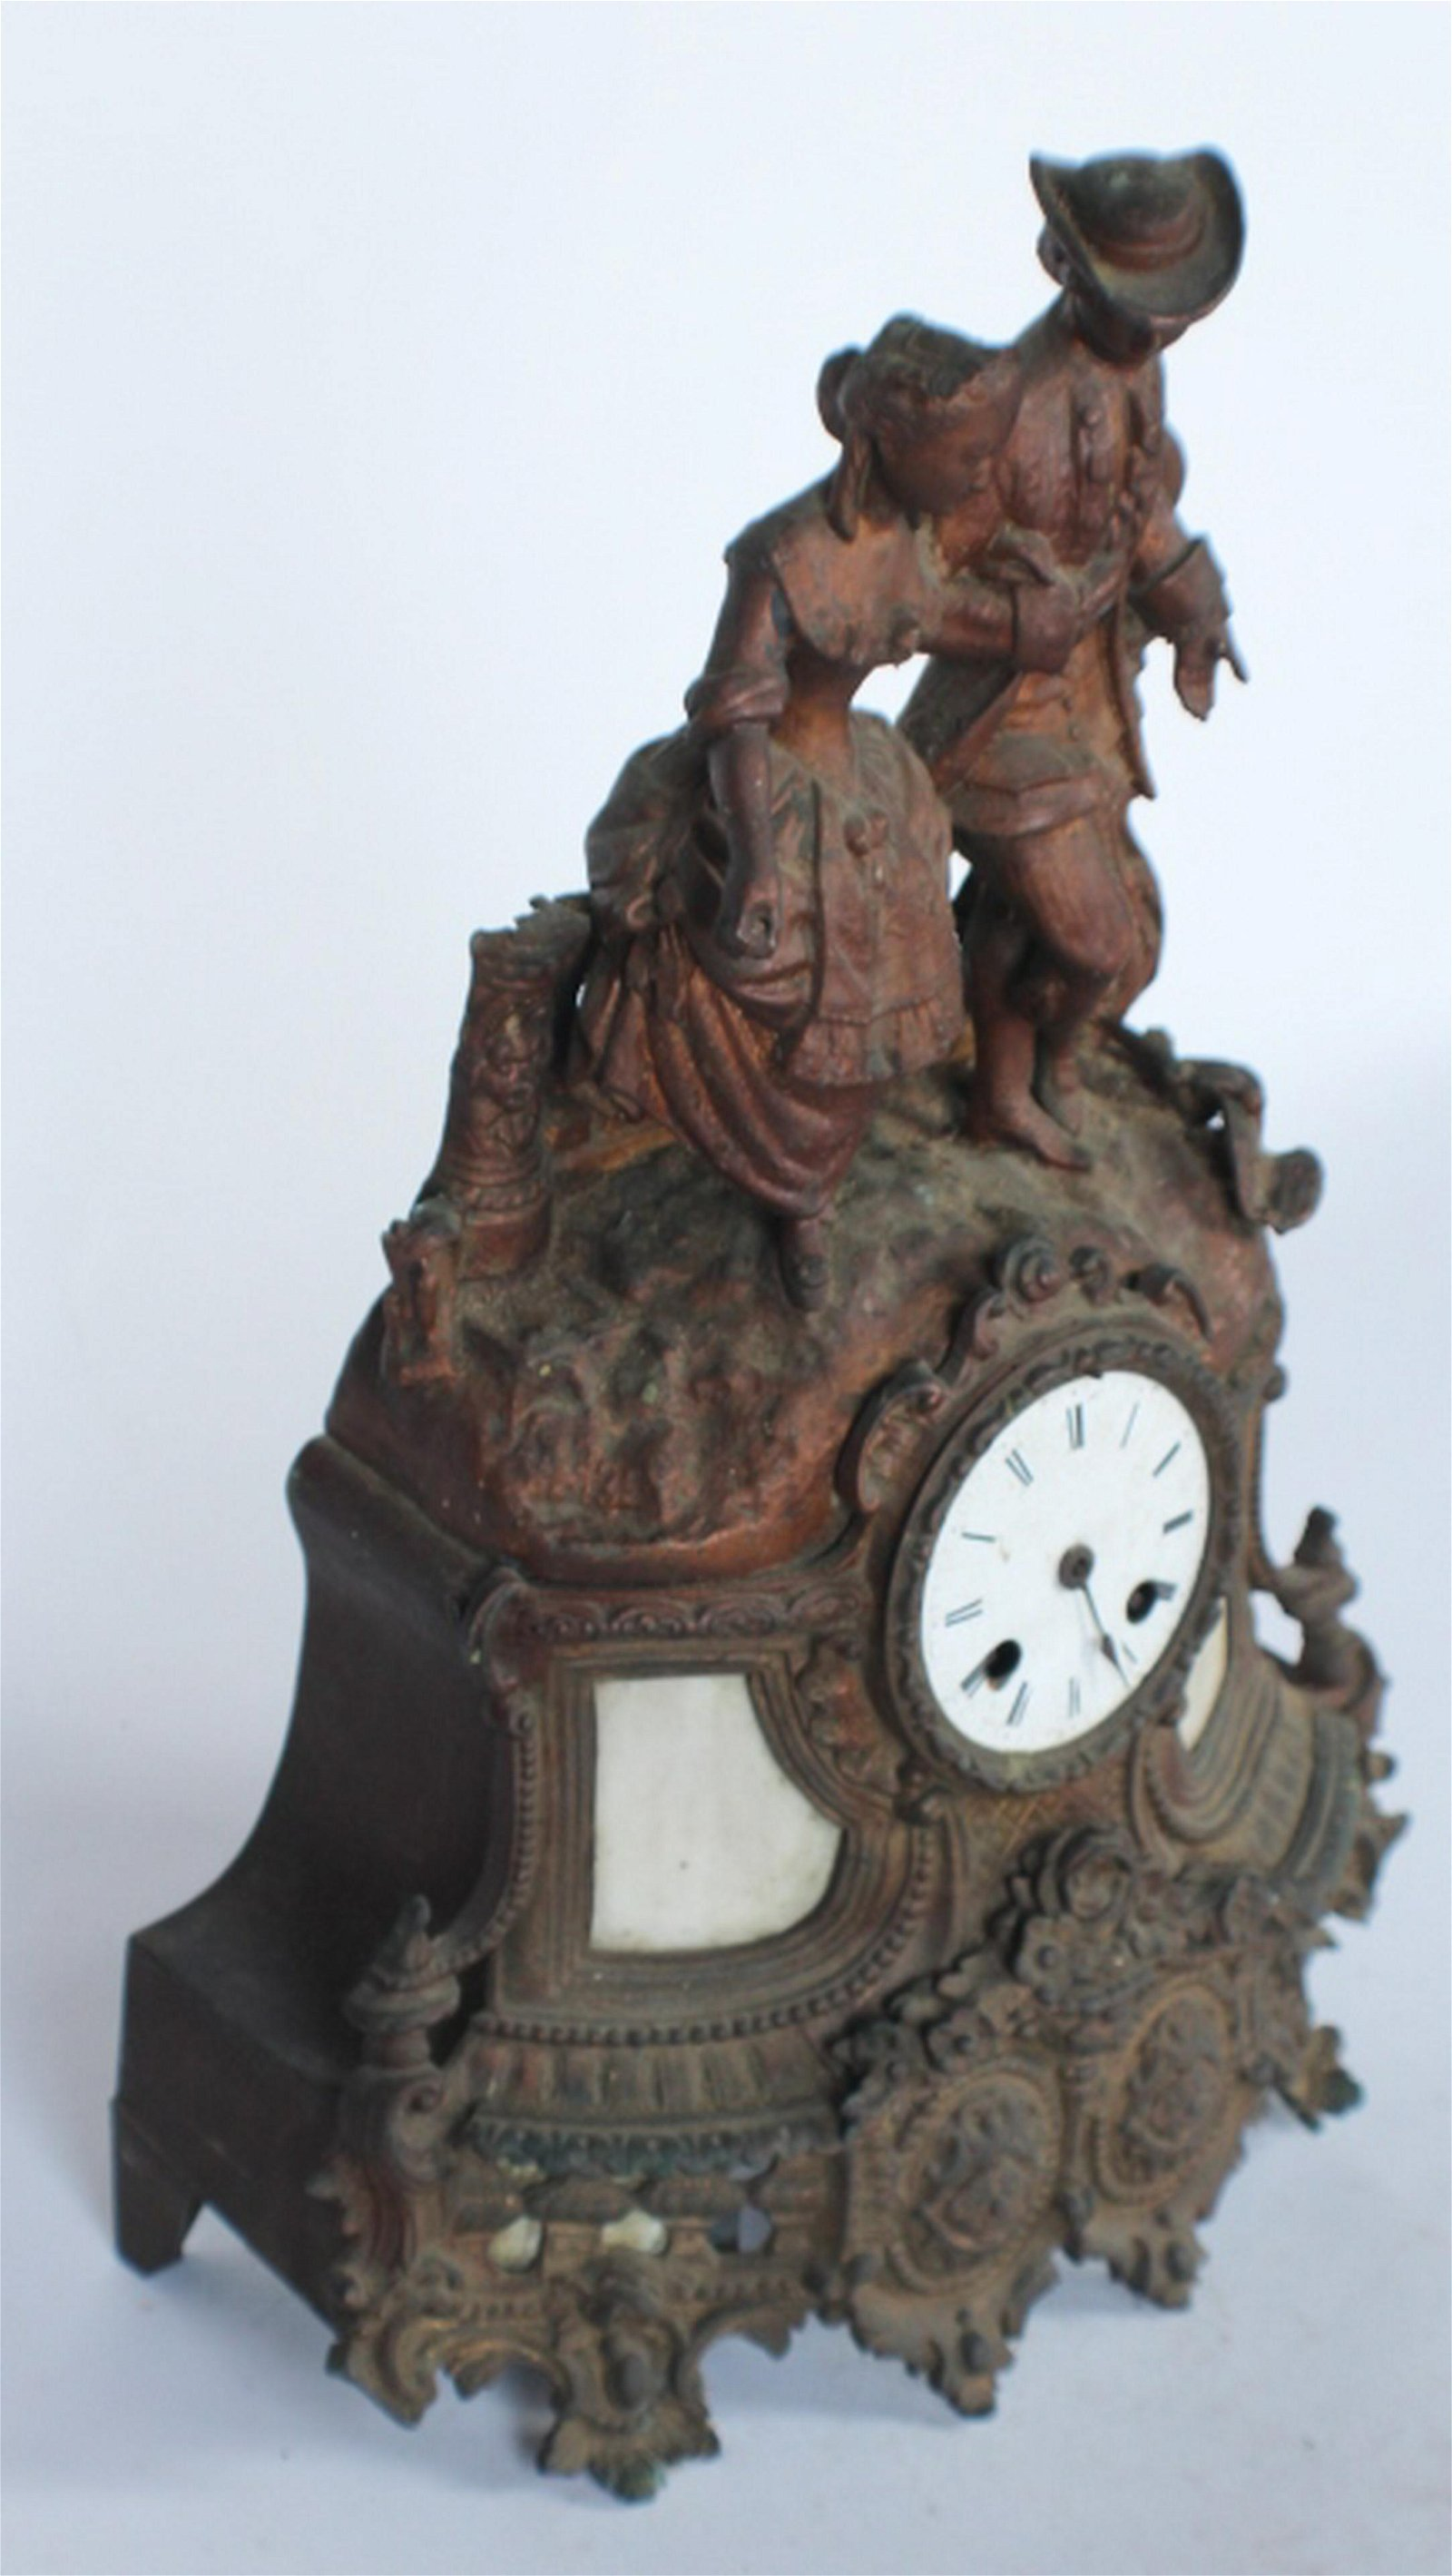 Antique French Spelter Mantel Clock